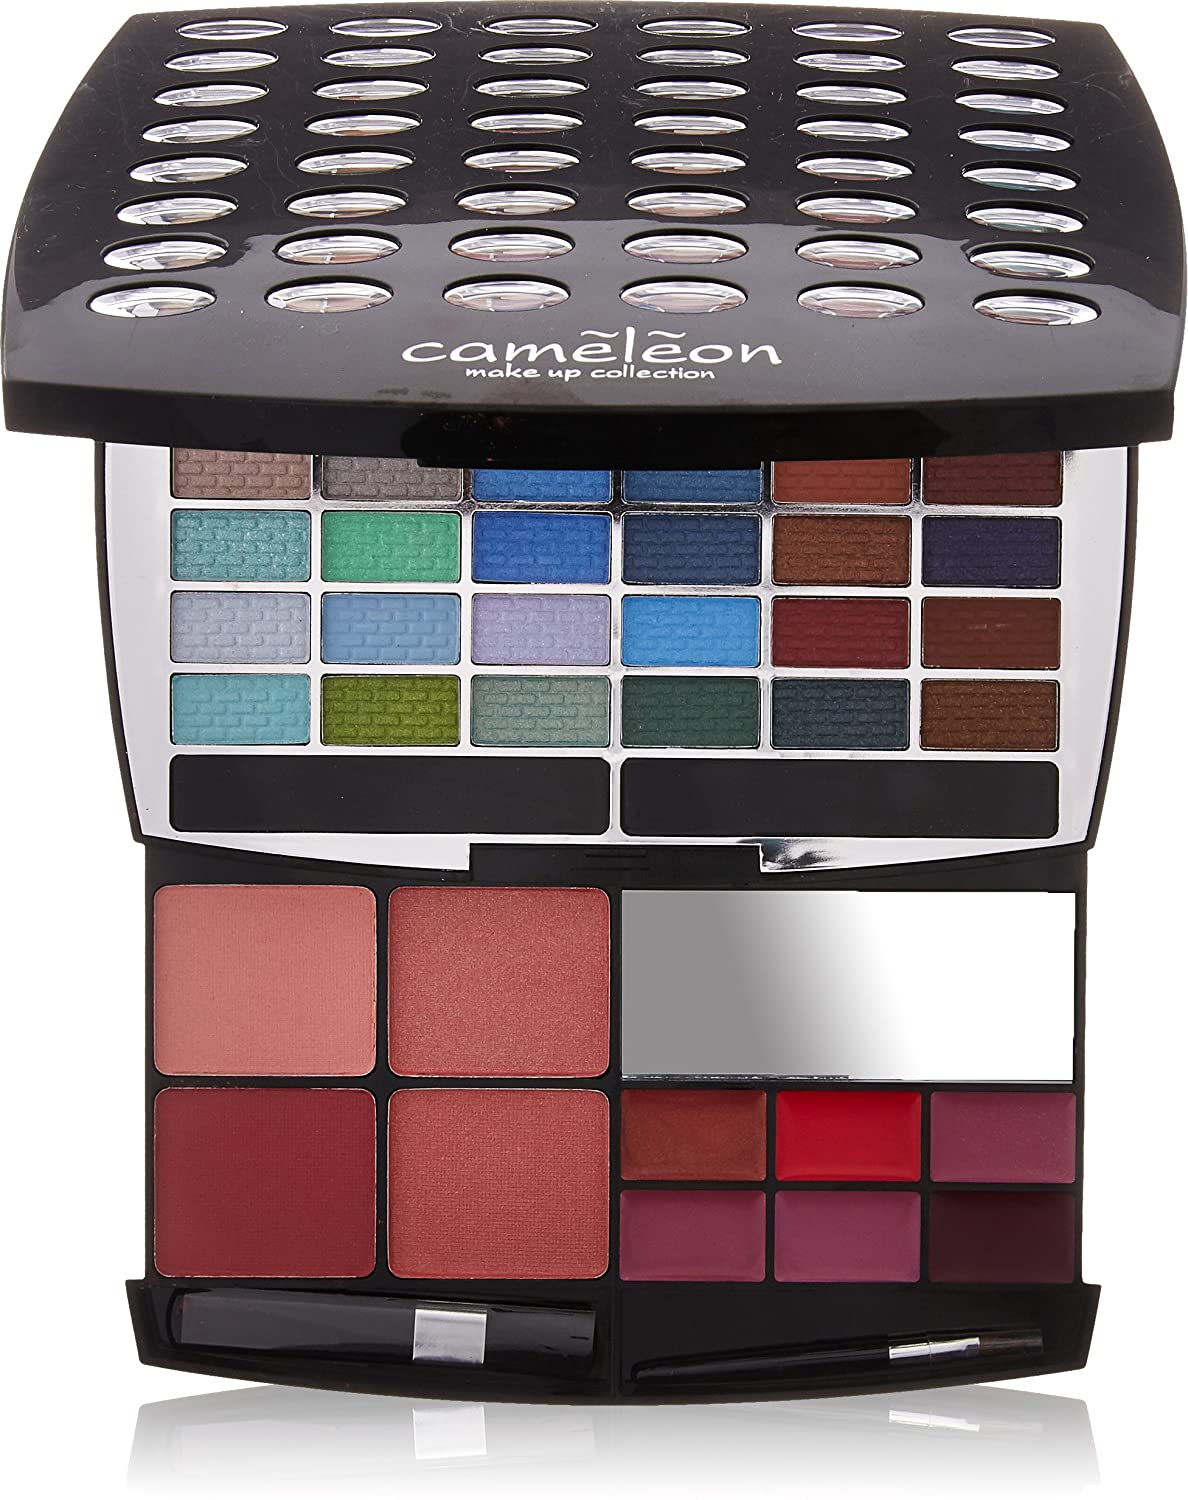 Cameleon Makeup Kit, G1665 Mainspring America Inc. DBA Direct Cosmetics